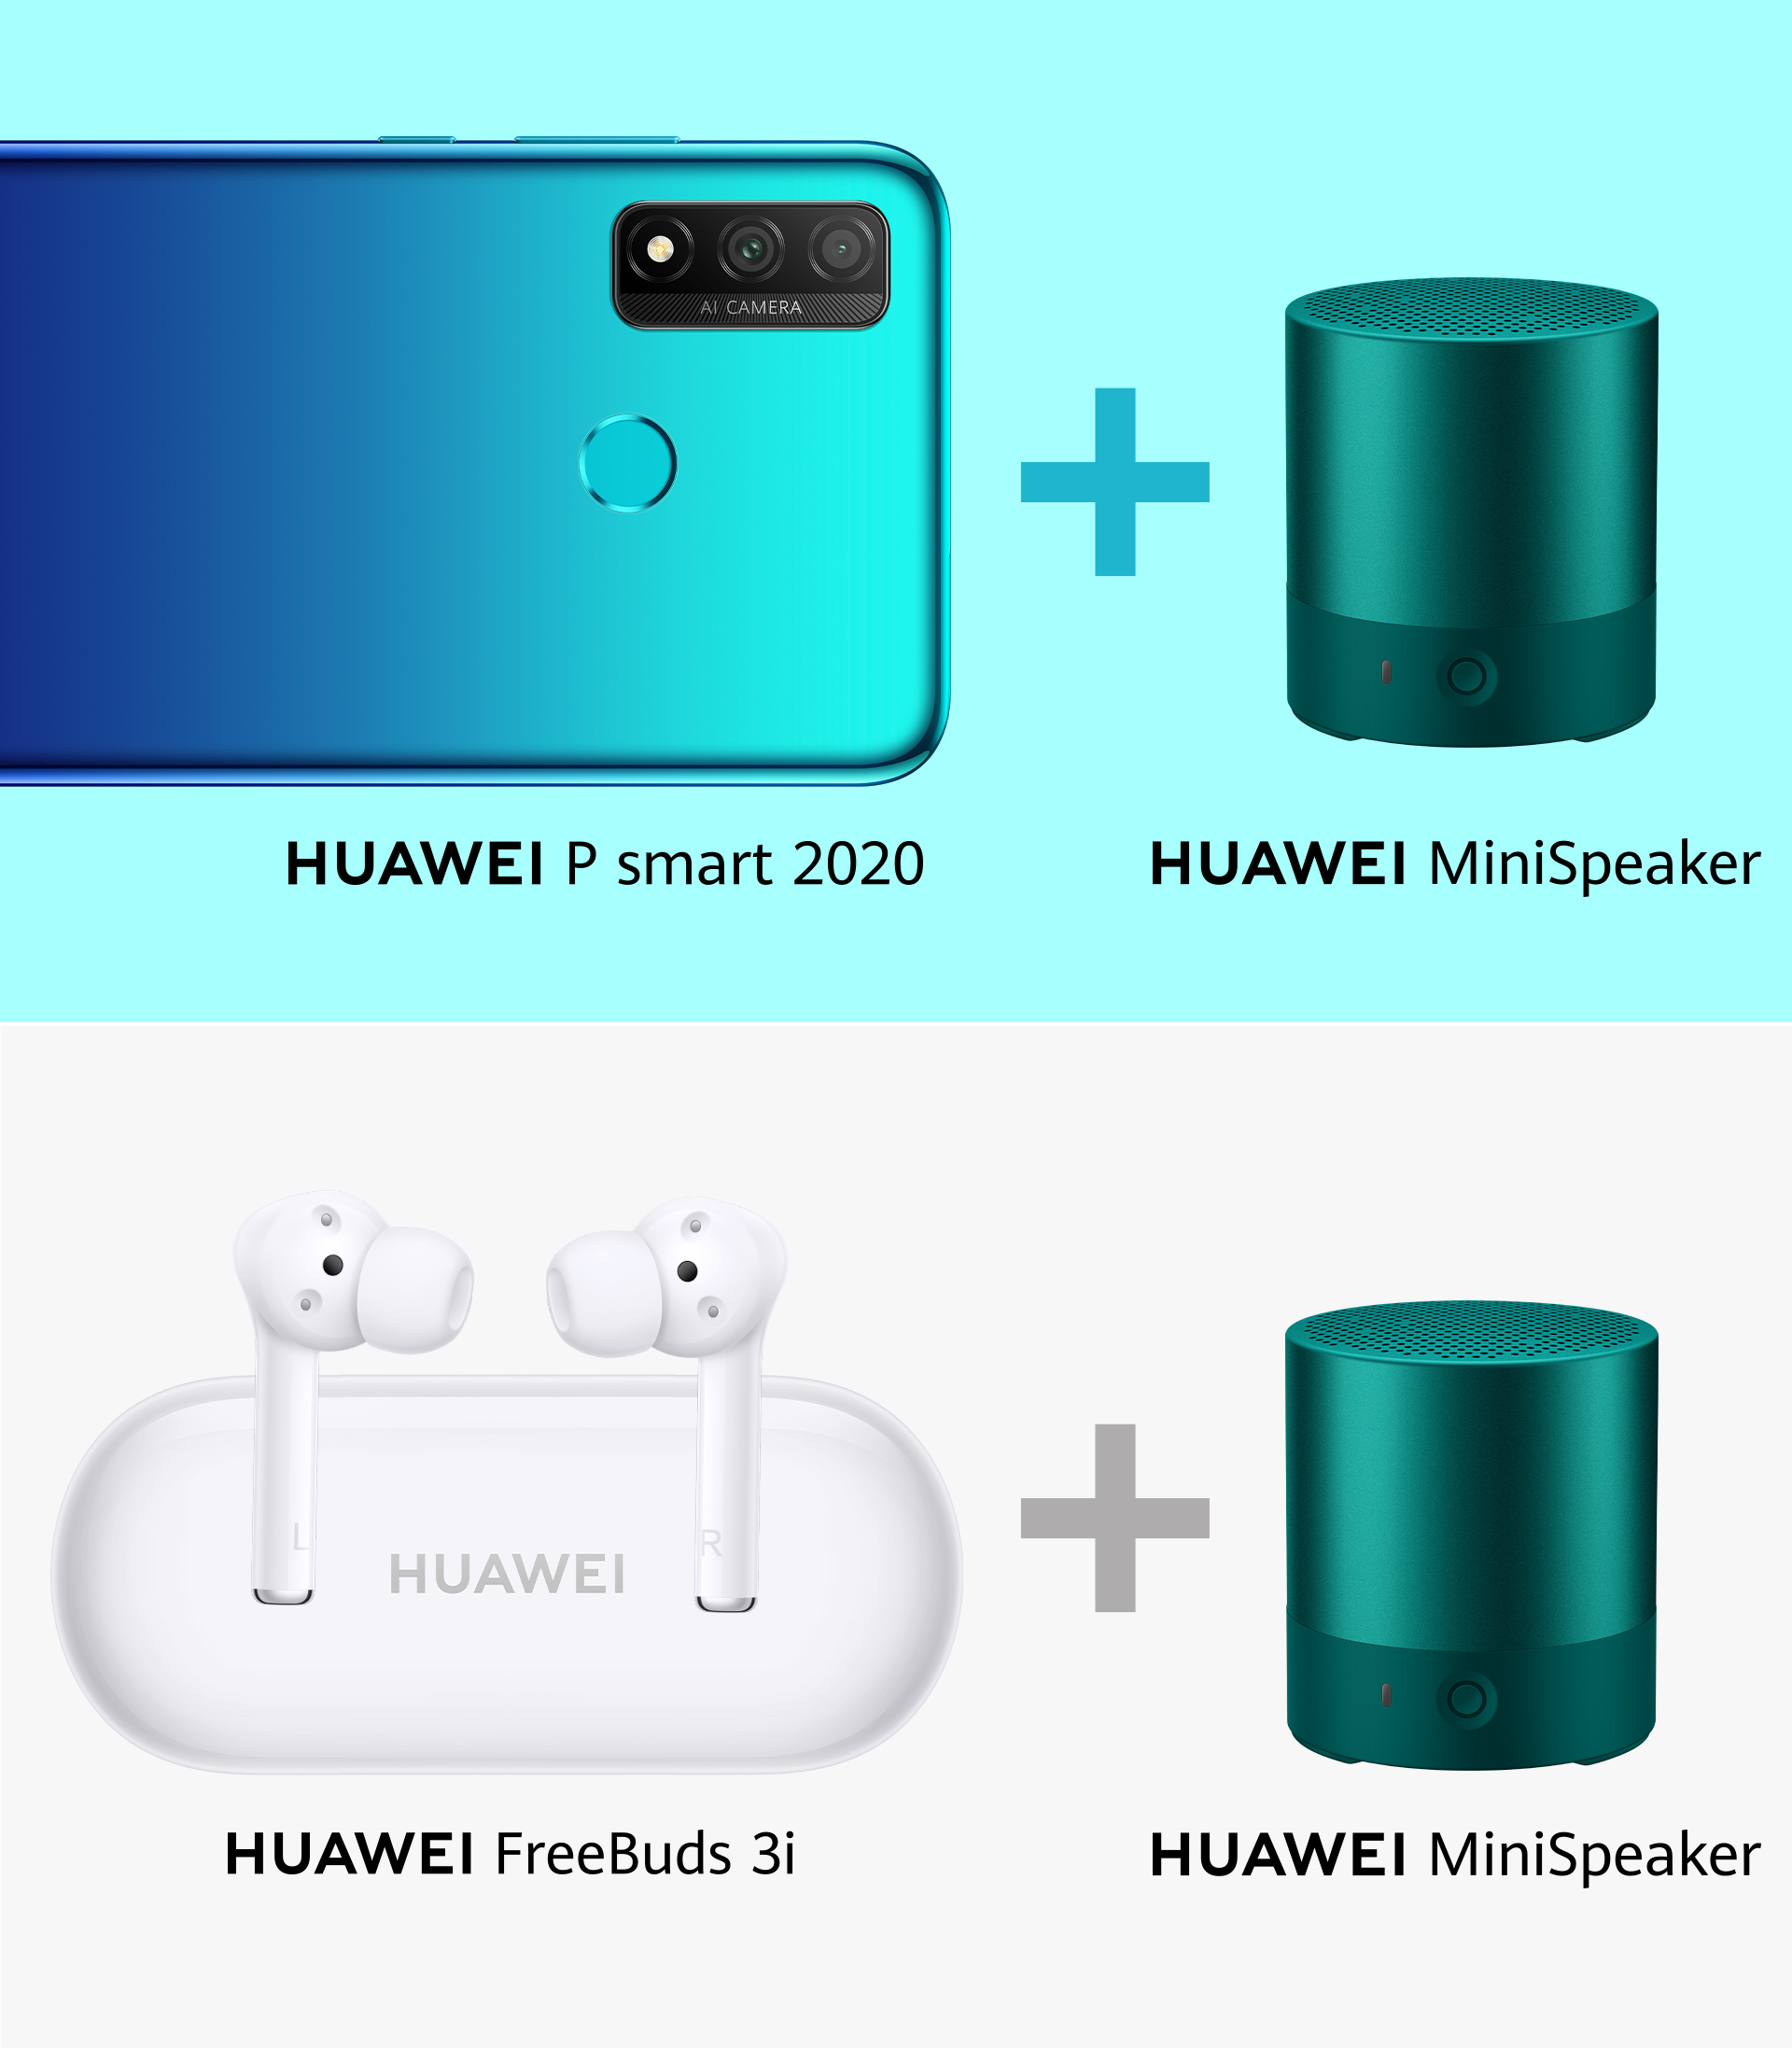 HUAWEI P smart 2020 mit Mini Speaker und HUAWEI FreeBuds 3i mit Mini Speaker